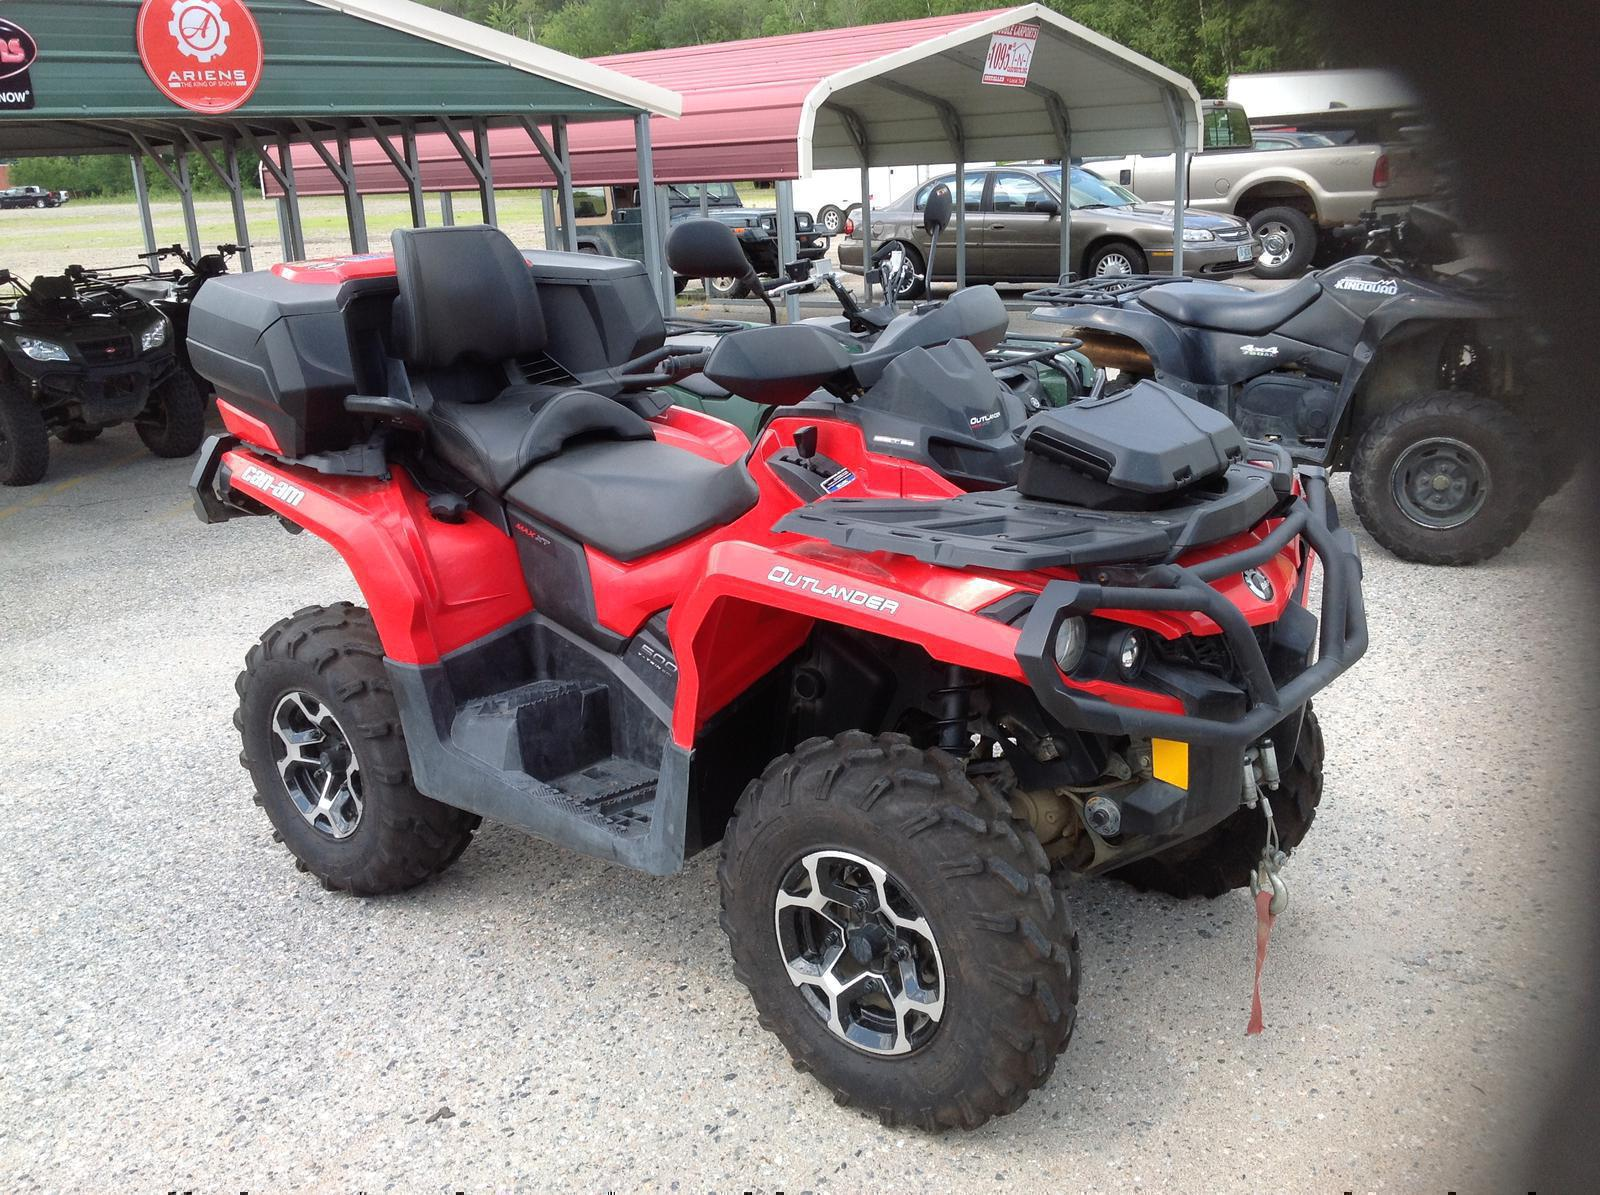 Inventory Absolute PowerSports NH Gorham, NH (603) 466-5454